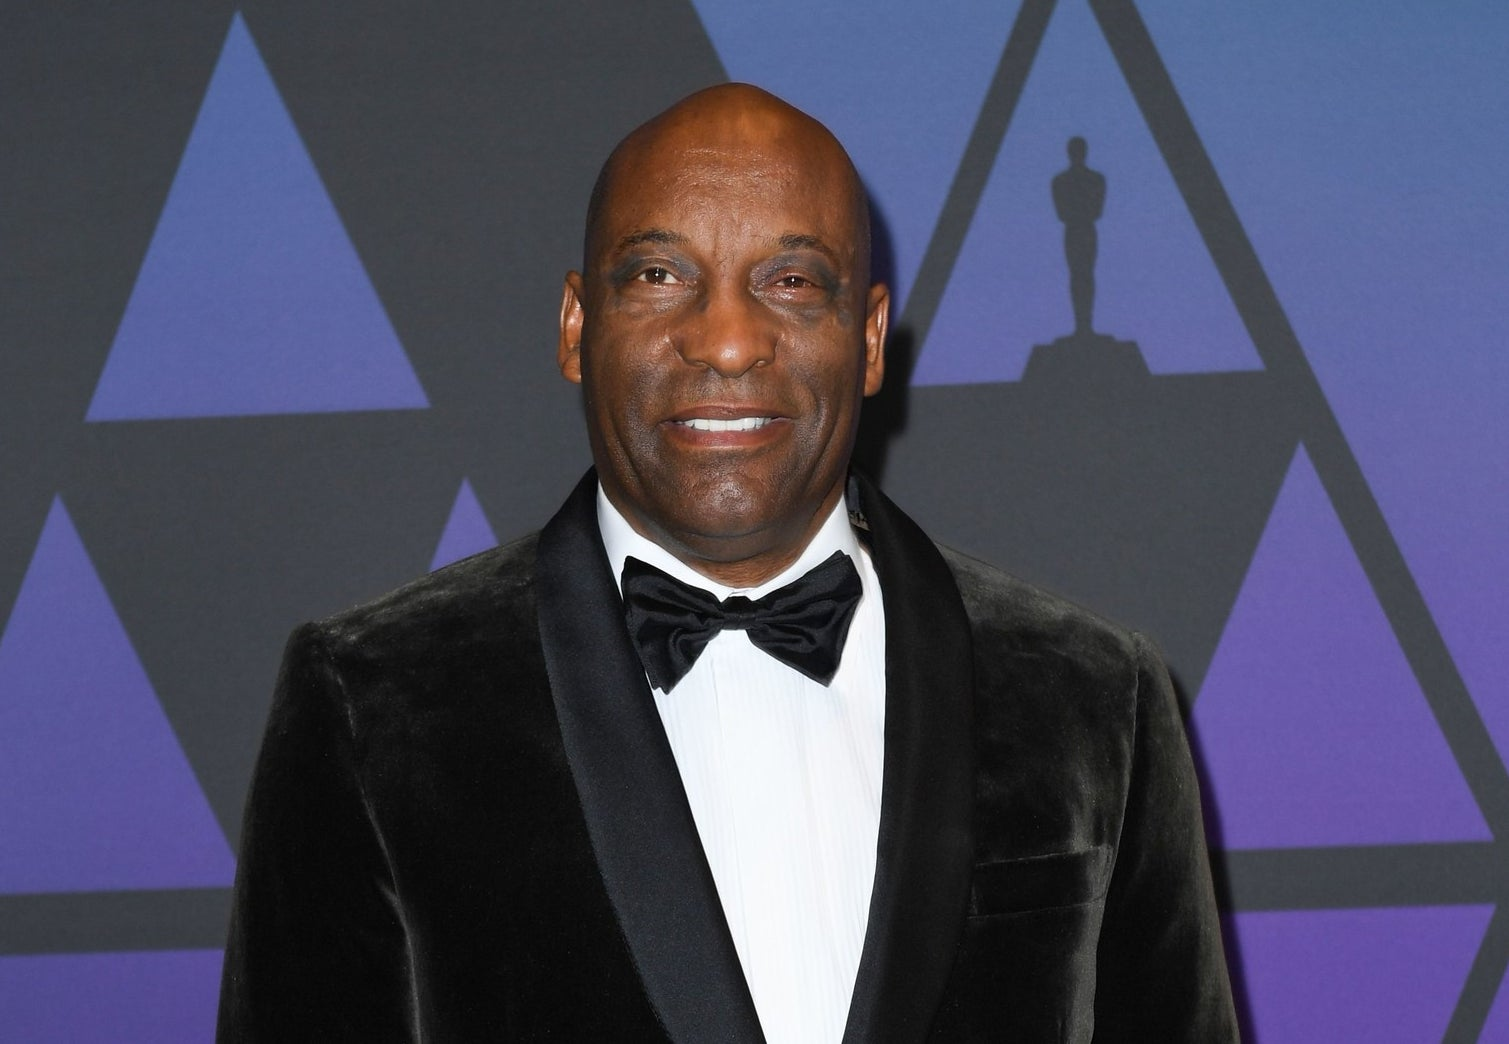 John Singleton attends the 2018 Governors Awards.